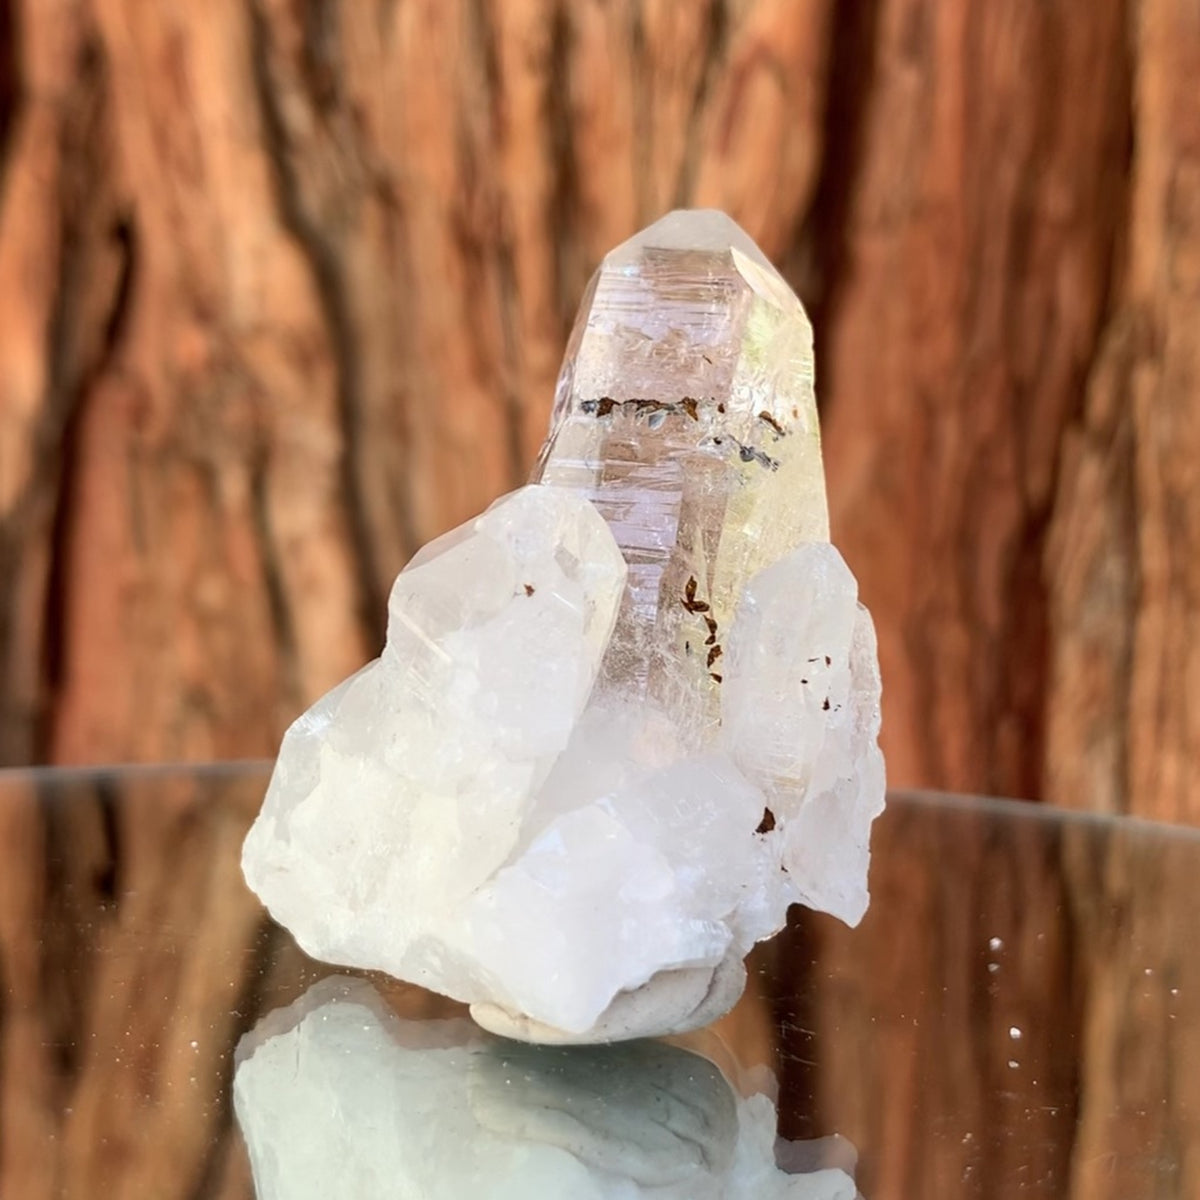 5.5cm 48g Himalayan Clear Quartz from Niamuru Mine, Arundo Village, Shigar District, Gilgit-Baltistan, Pakistan